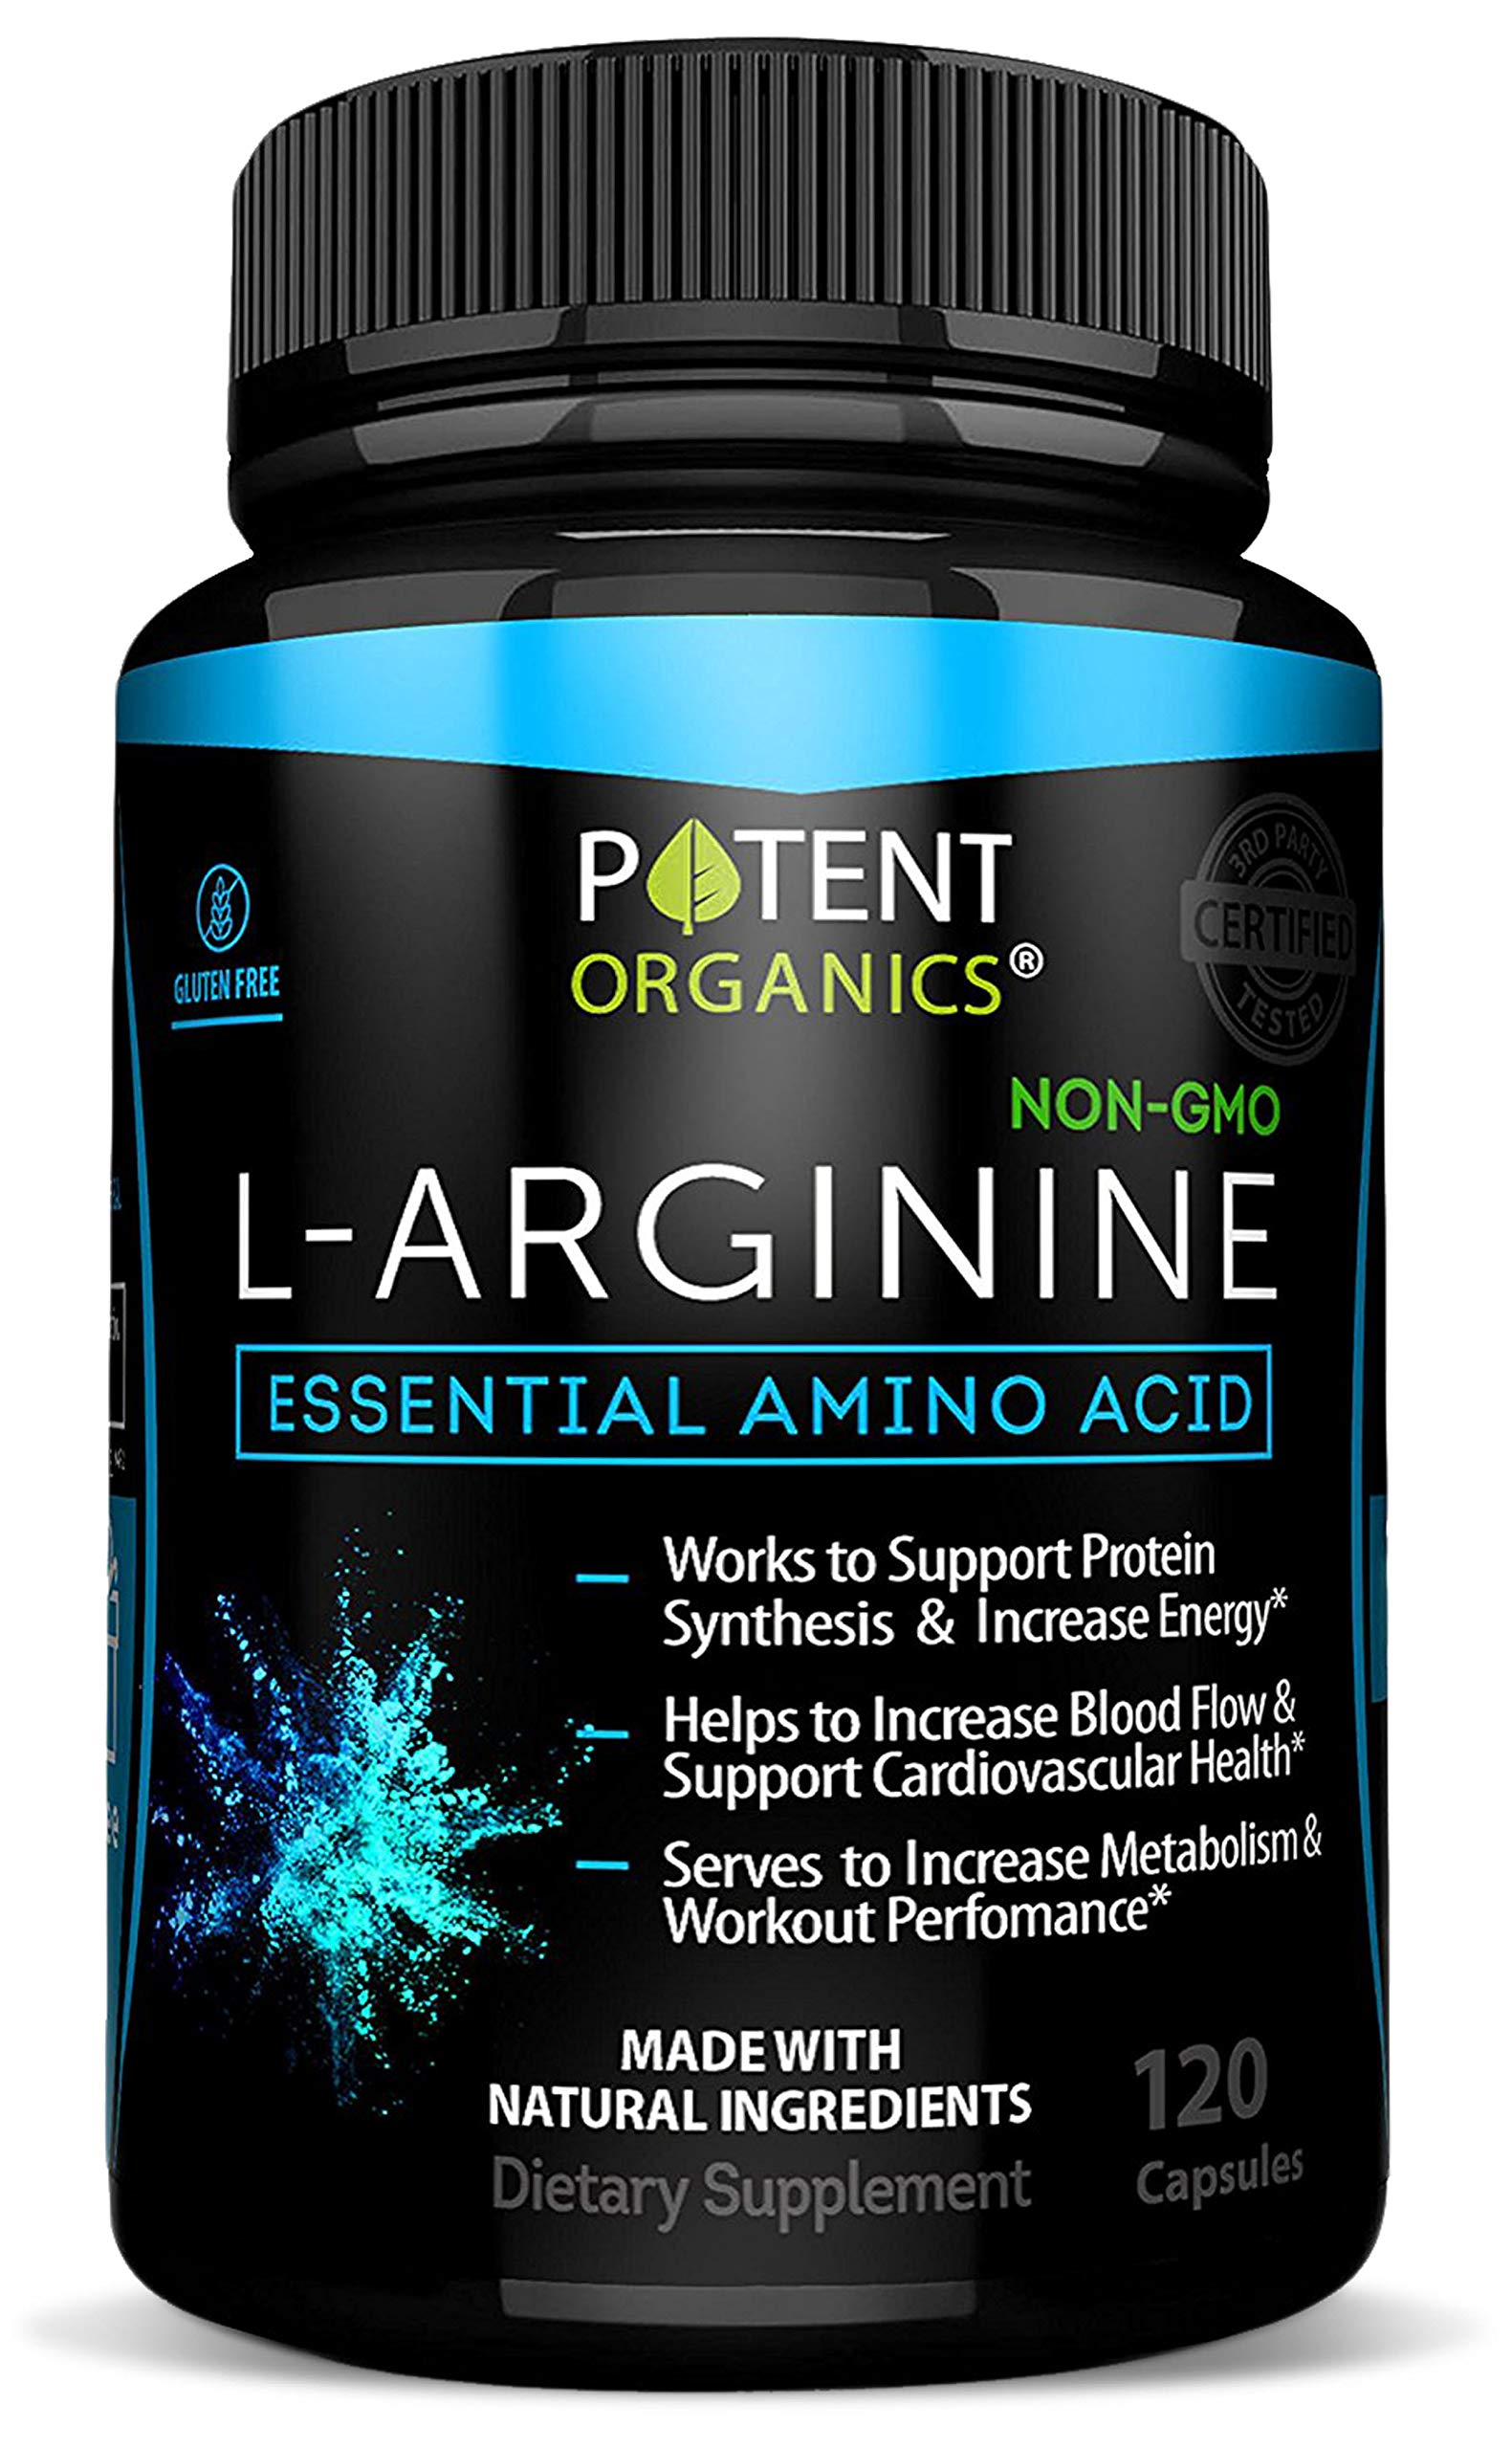 L-Arginine Essential Amino Acid 120 Vegetarian Capsules - For Muscle, Heart and Energy! by Potent Organics